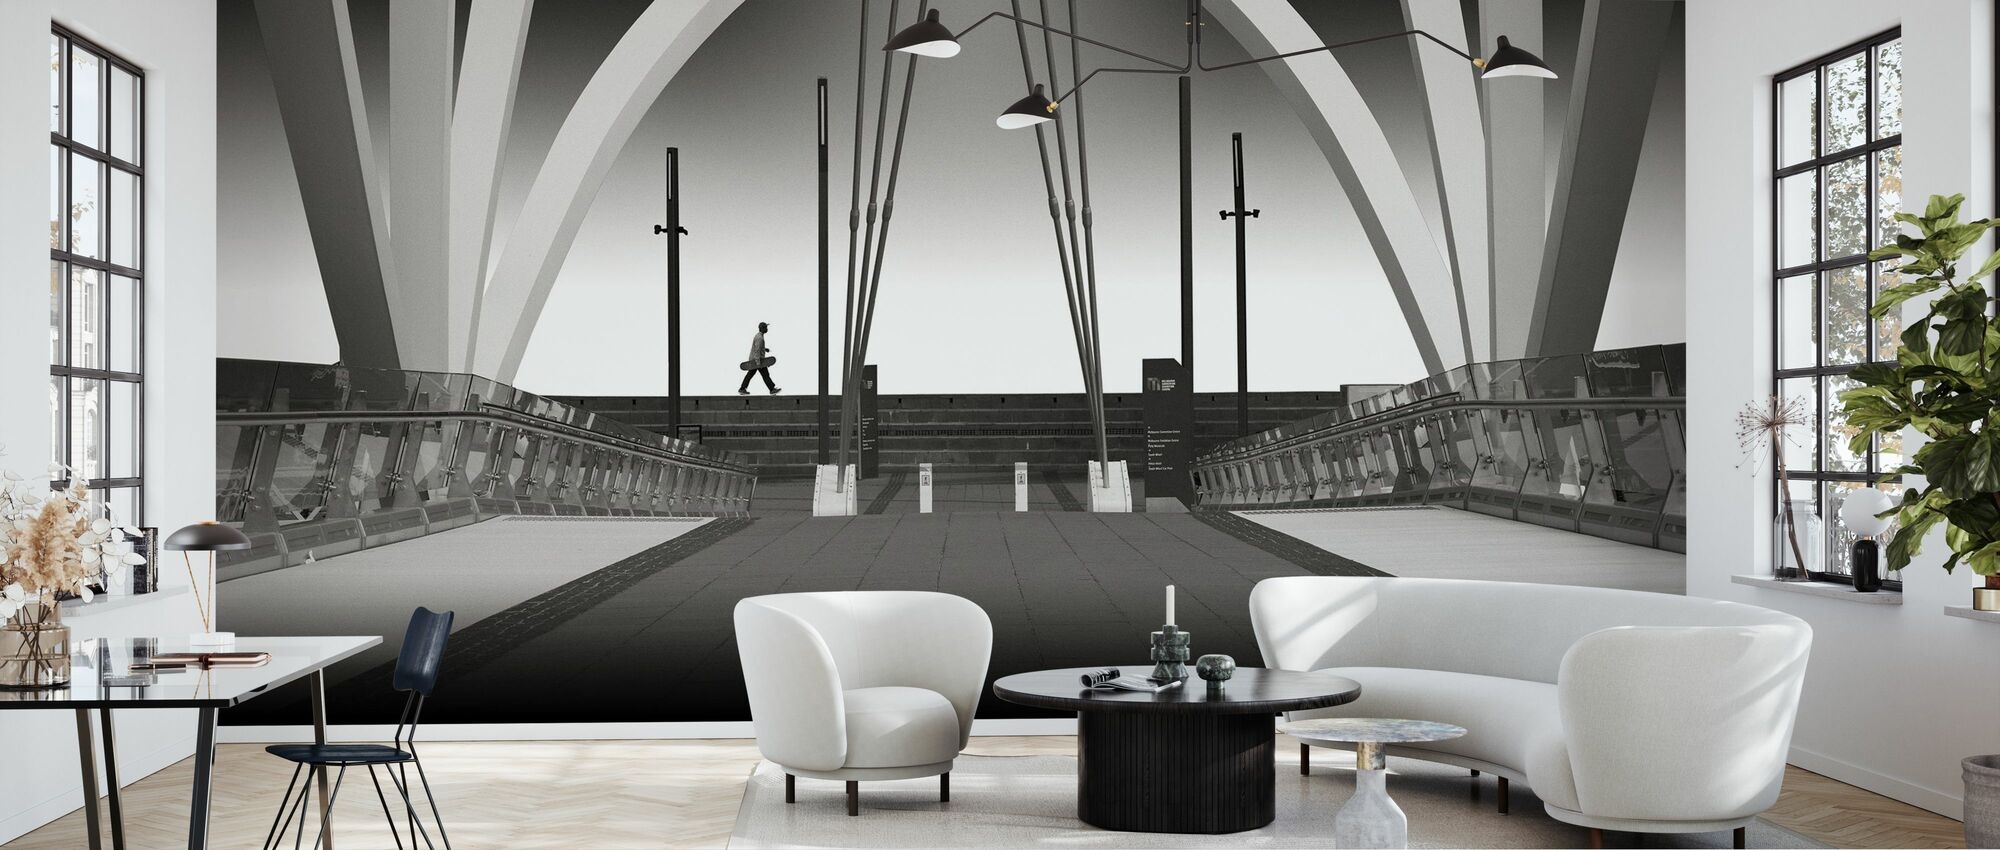 Seafarers Bridge - Wallpaper - Living Room